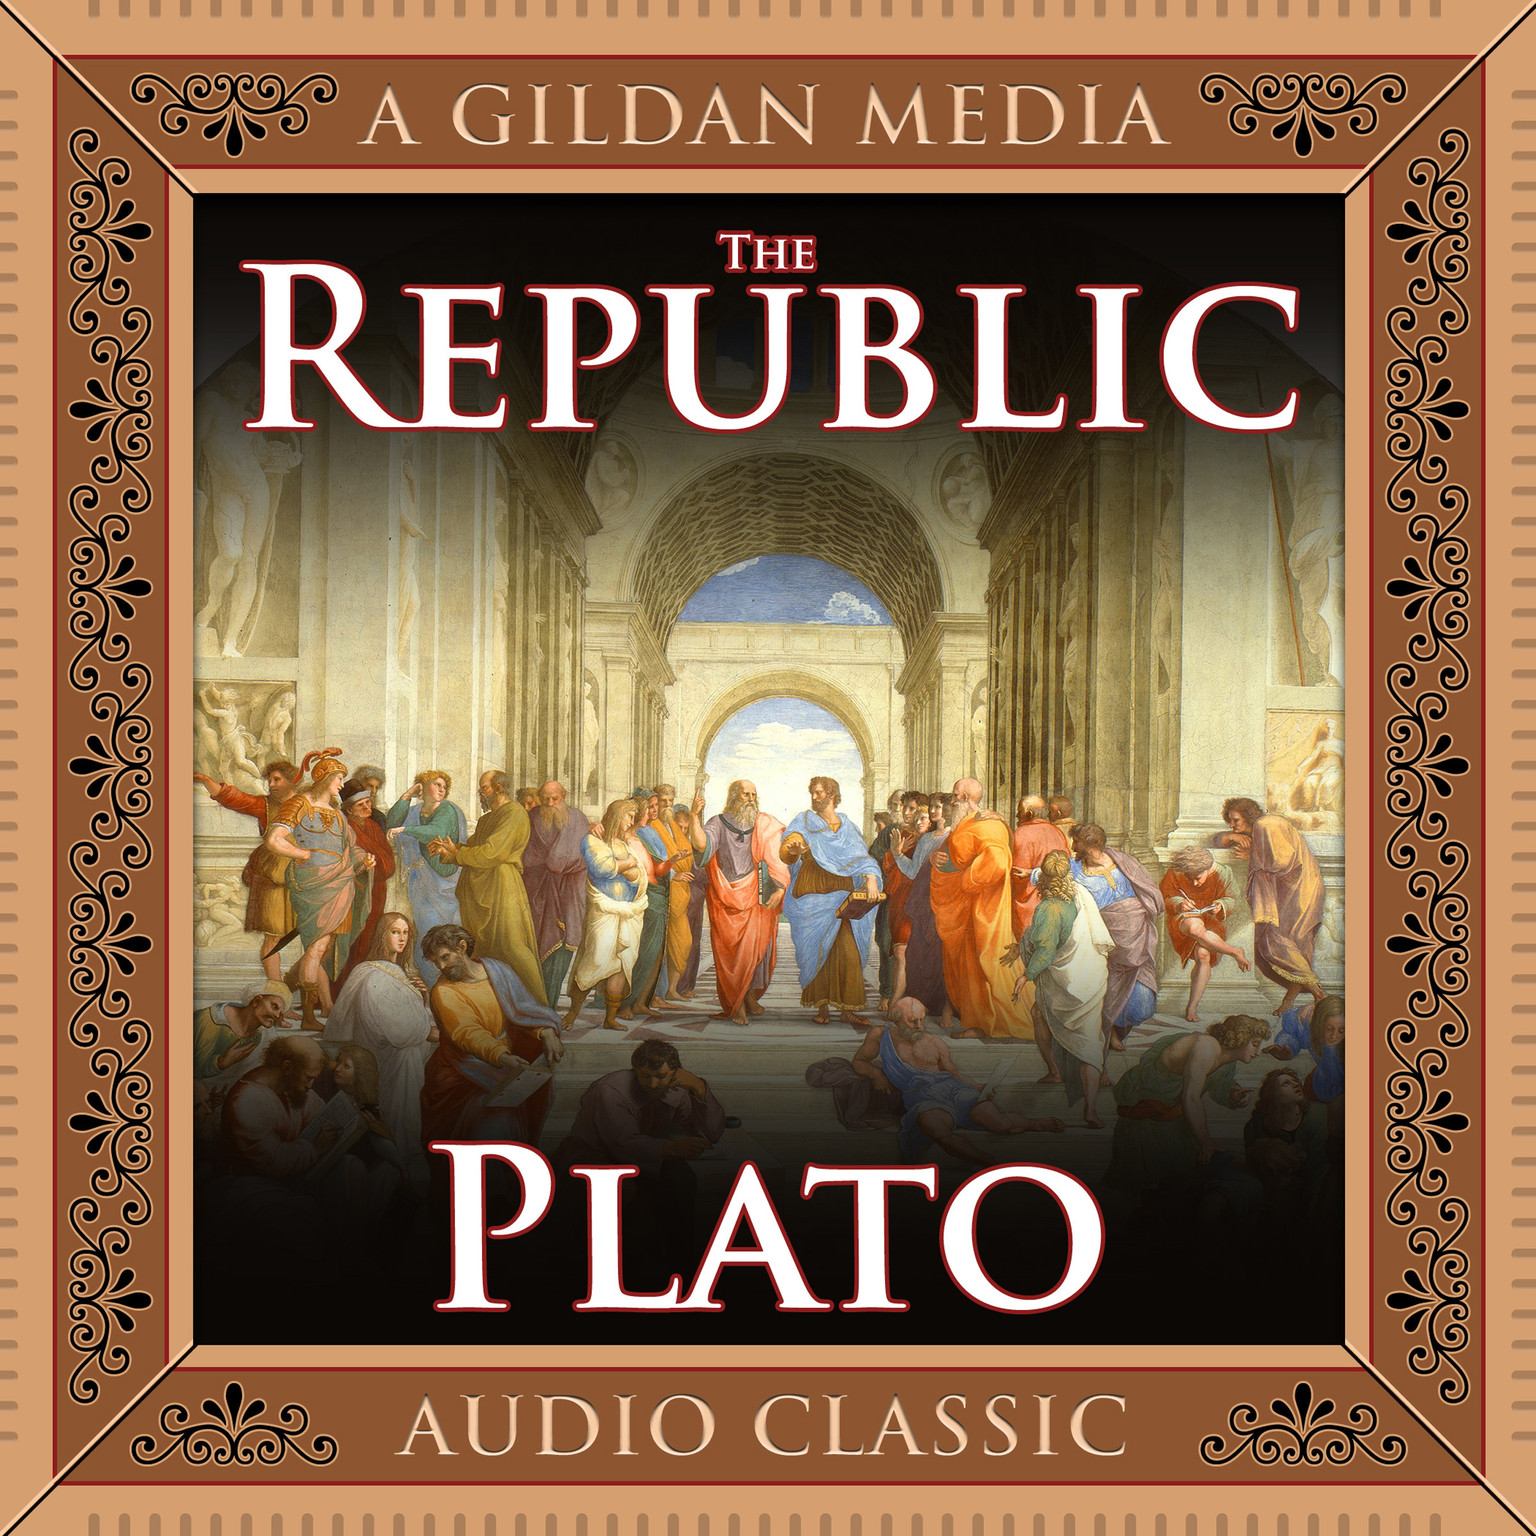 Plato essay on the republic